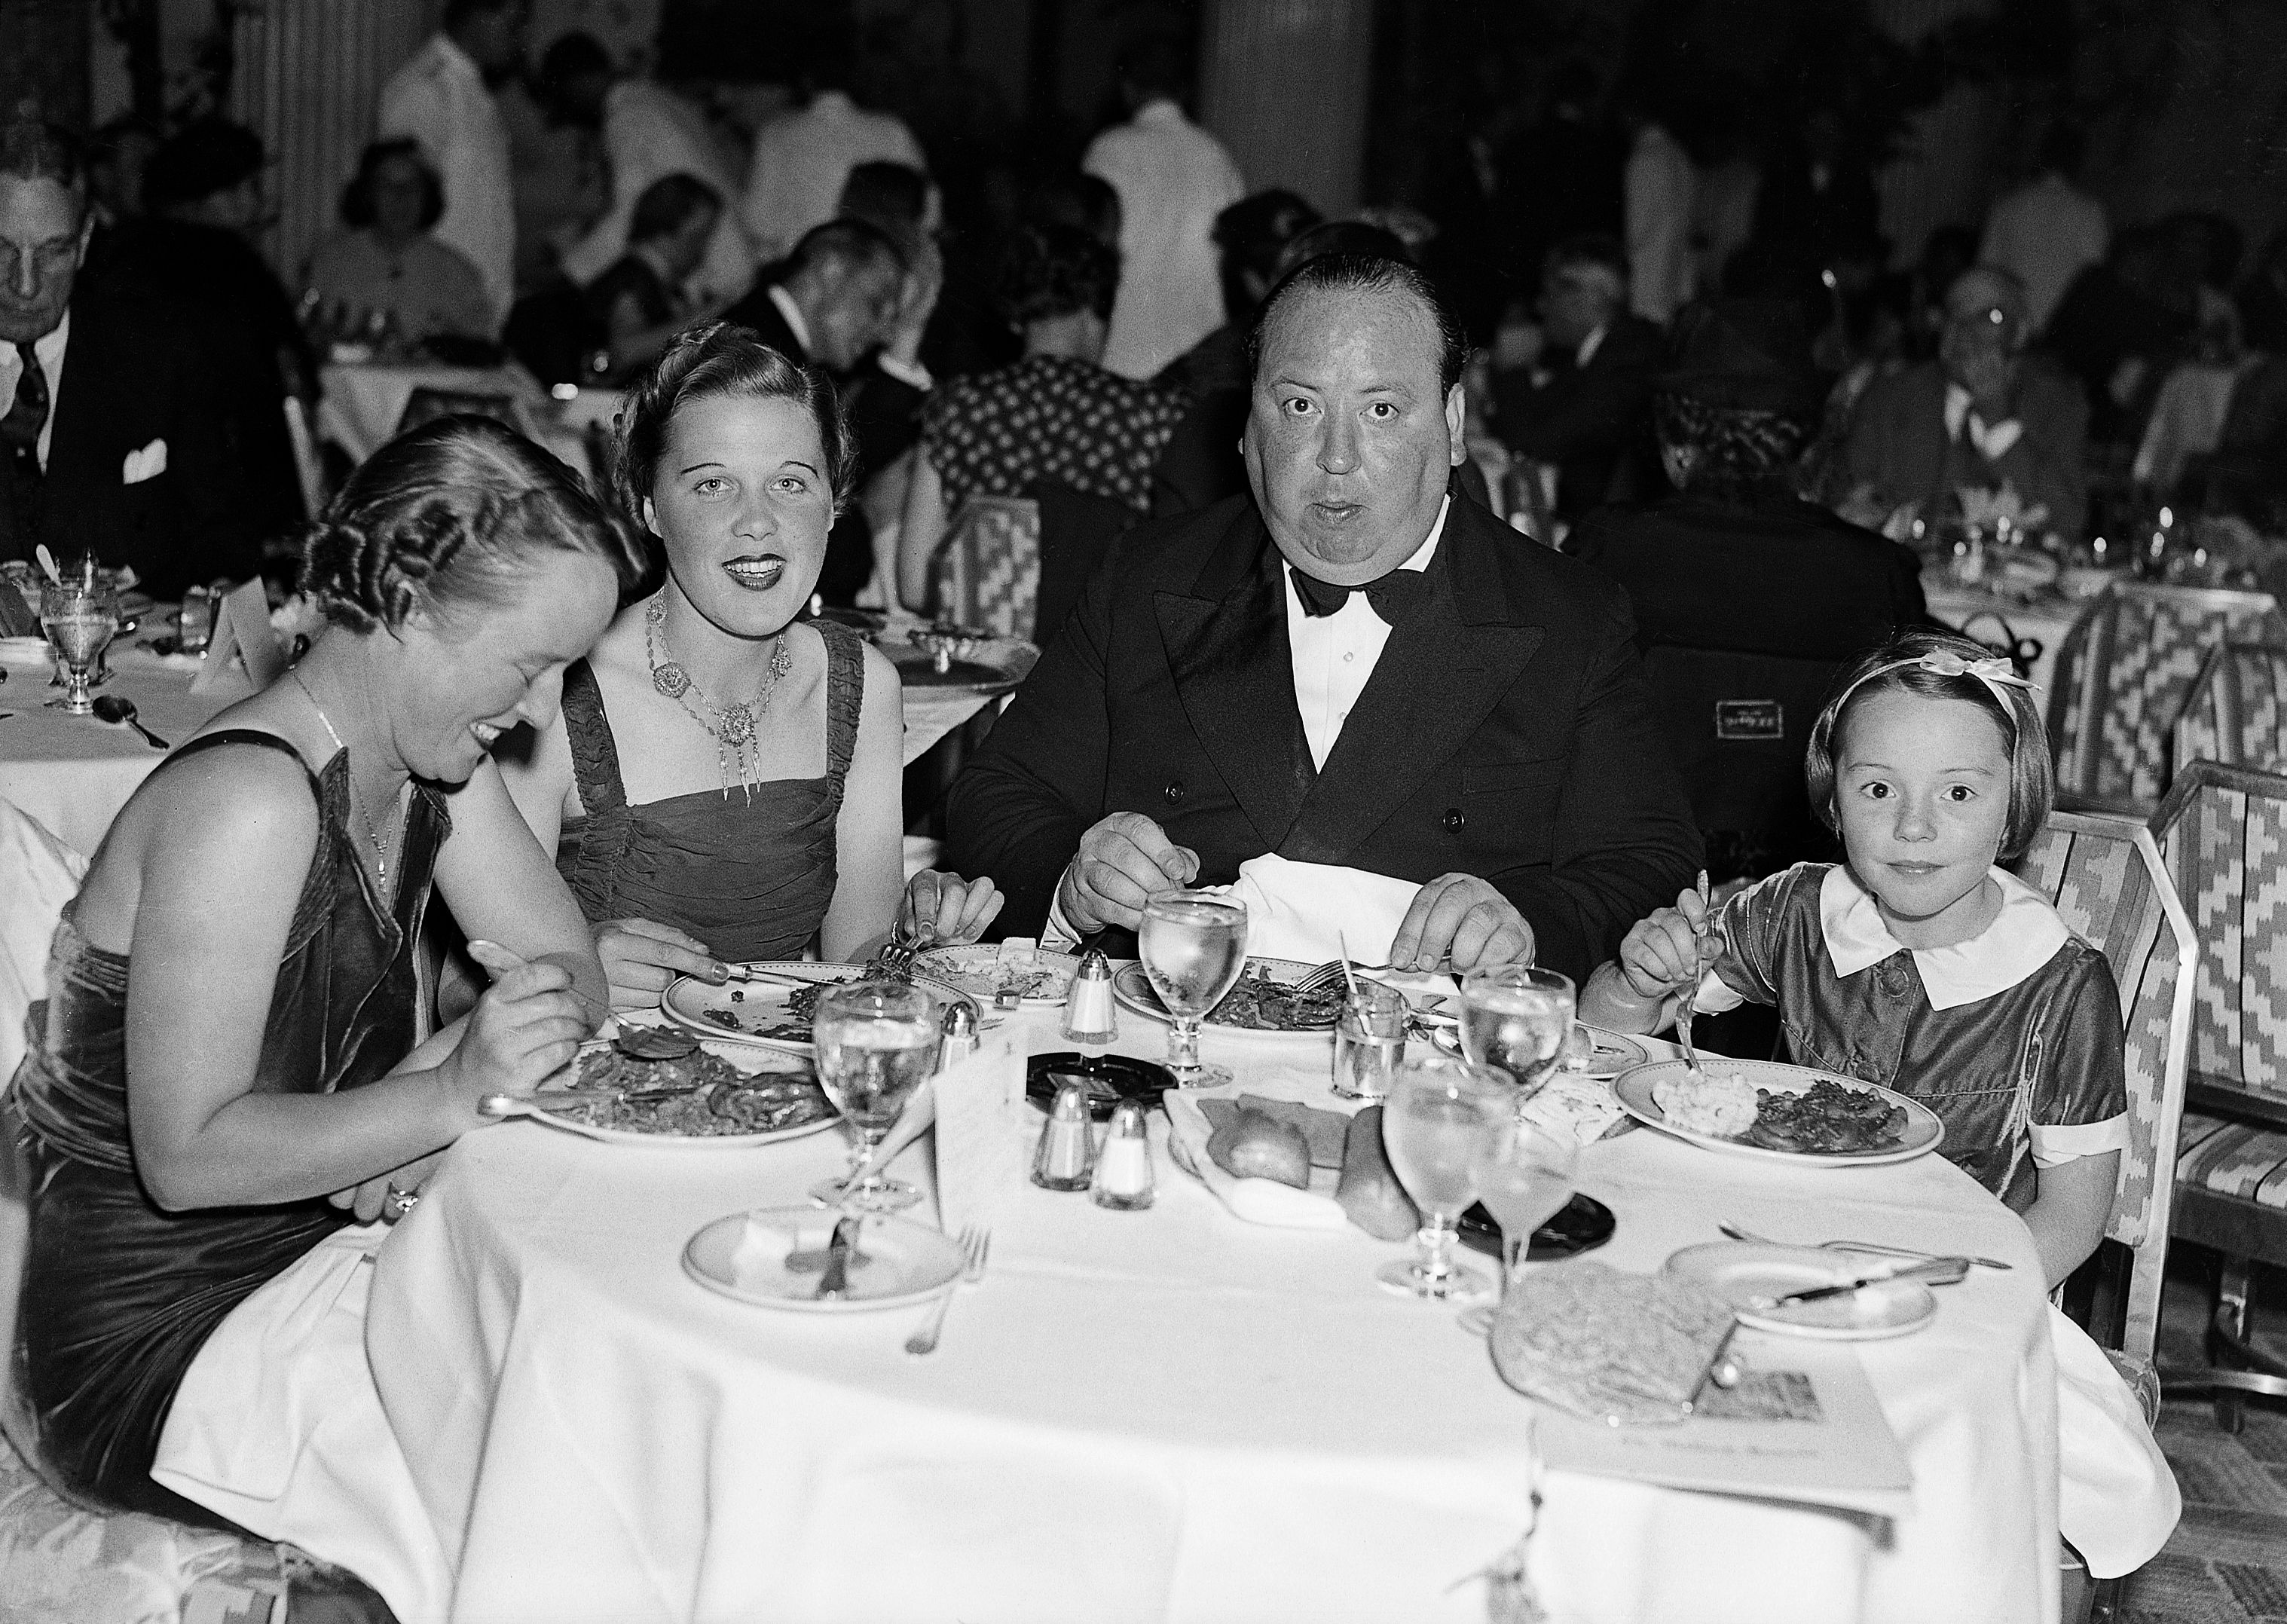 L-R: Alma Reville, Joan Harrison, Hitch and daughter Pat in a New York restaurant, August 1937